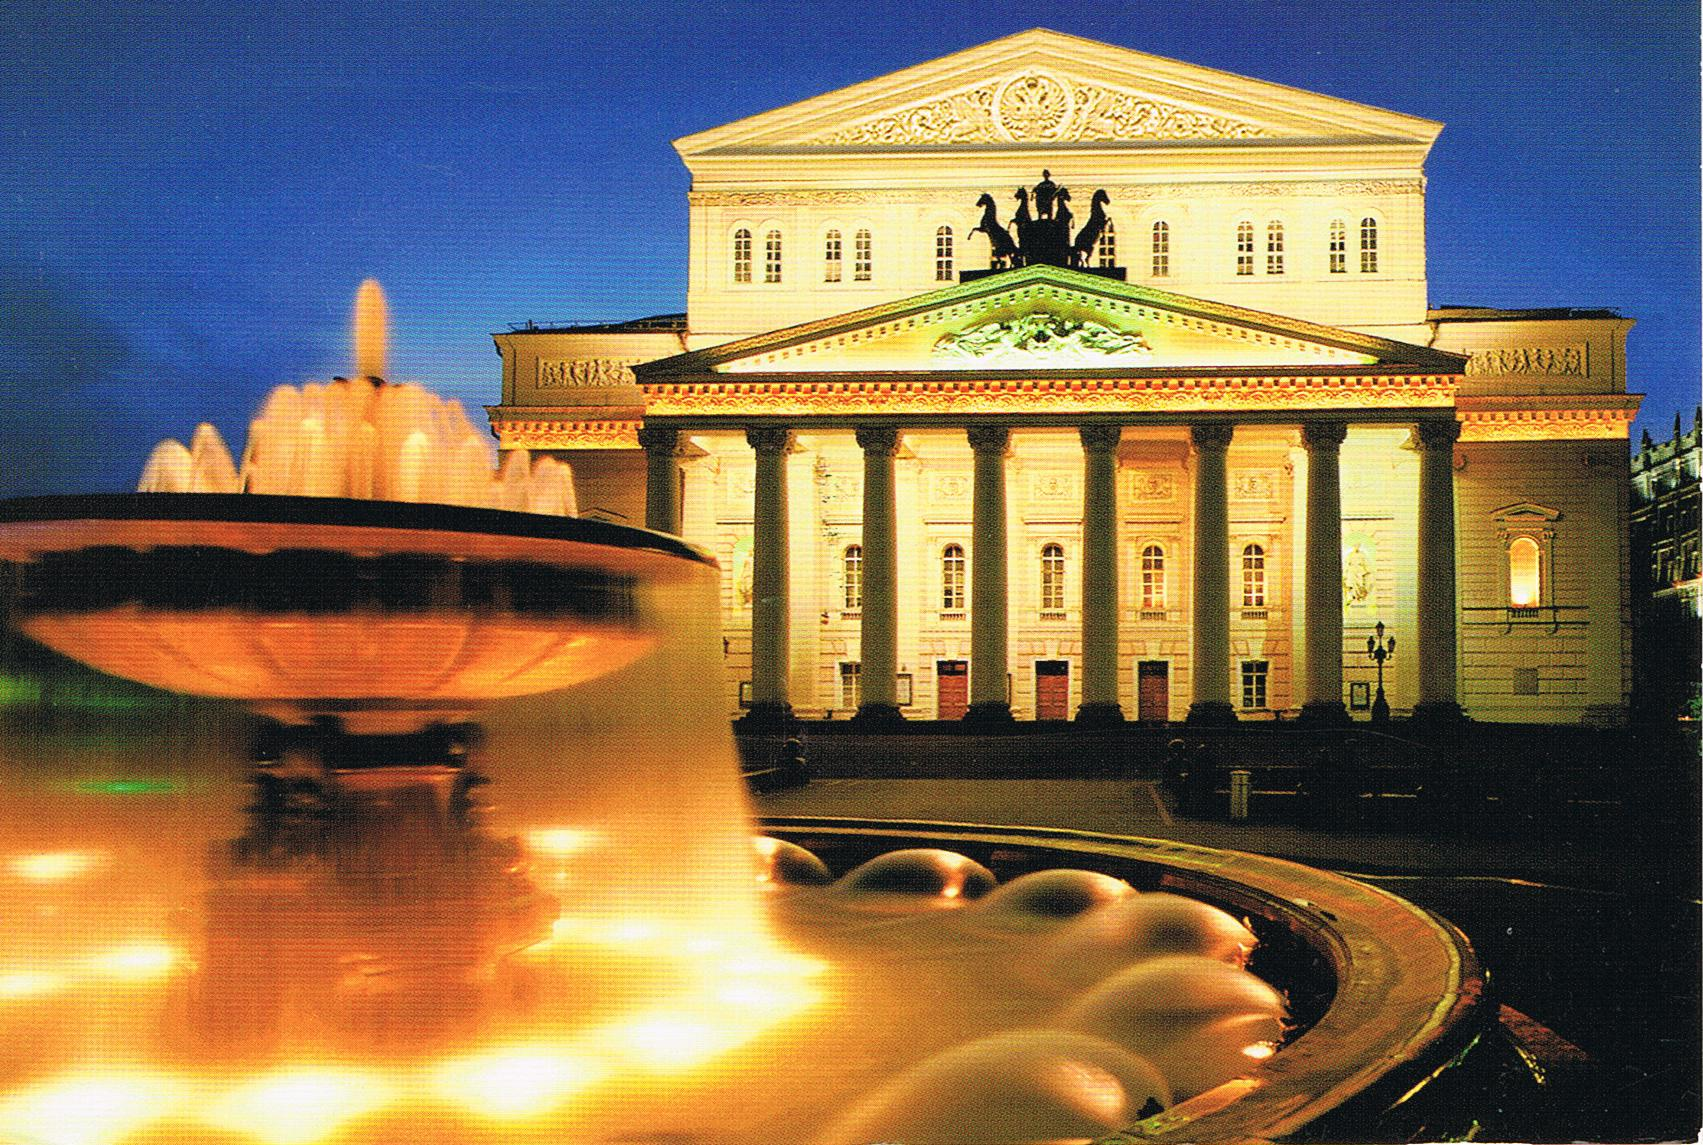 Das Bolschoi-Theater in Moskau